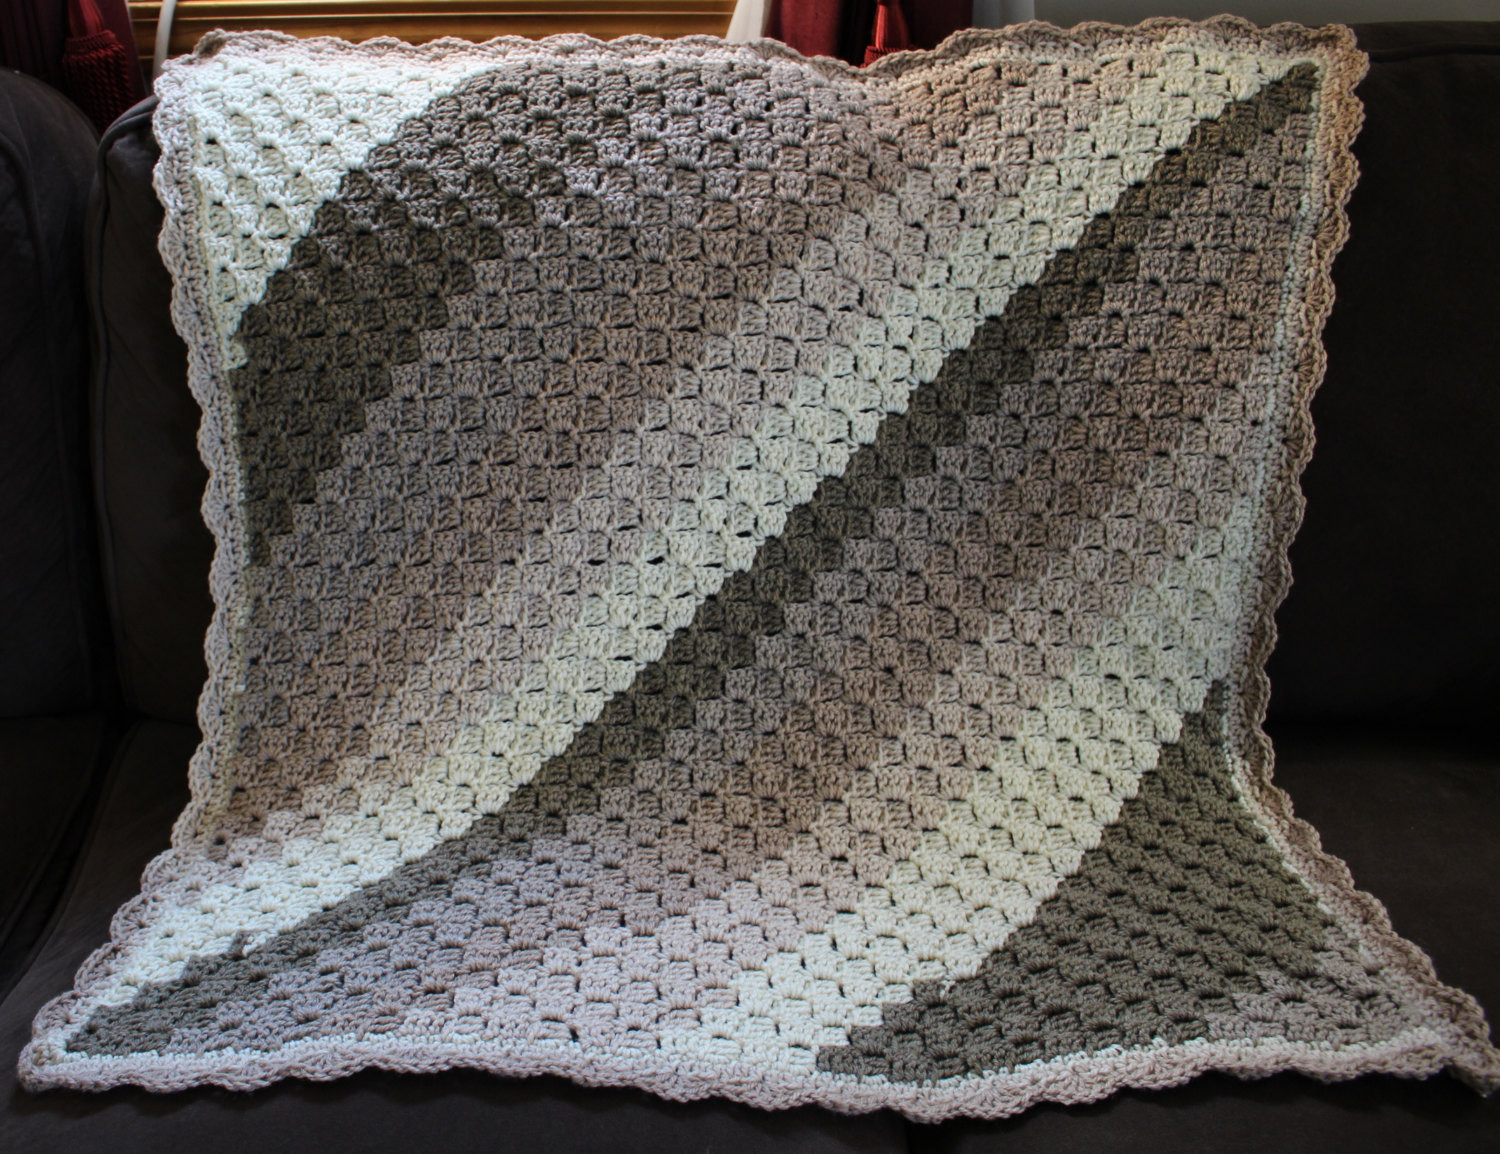 Super Soft Baby blanket 30 by 30 inches Made with Caron